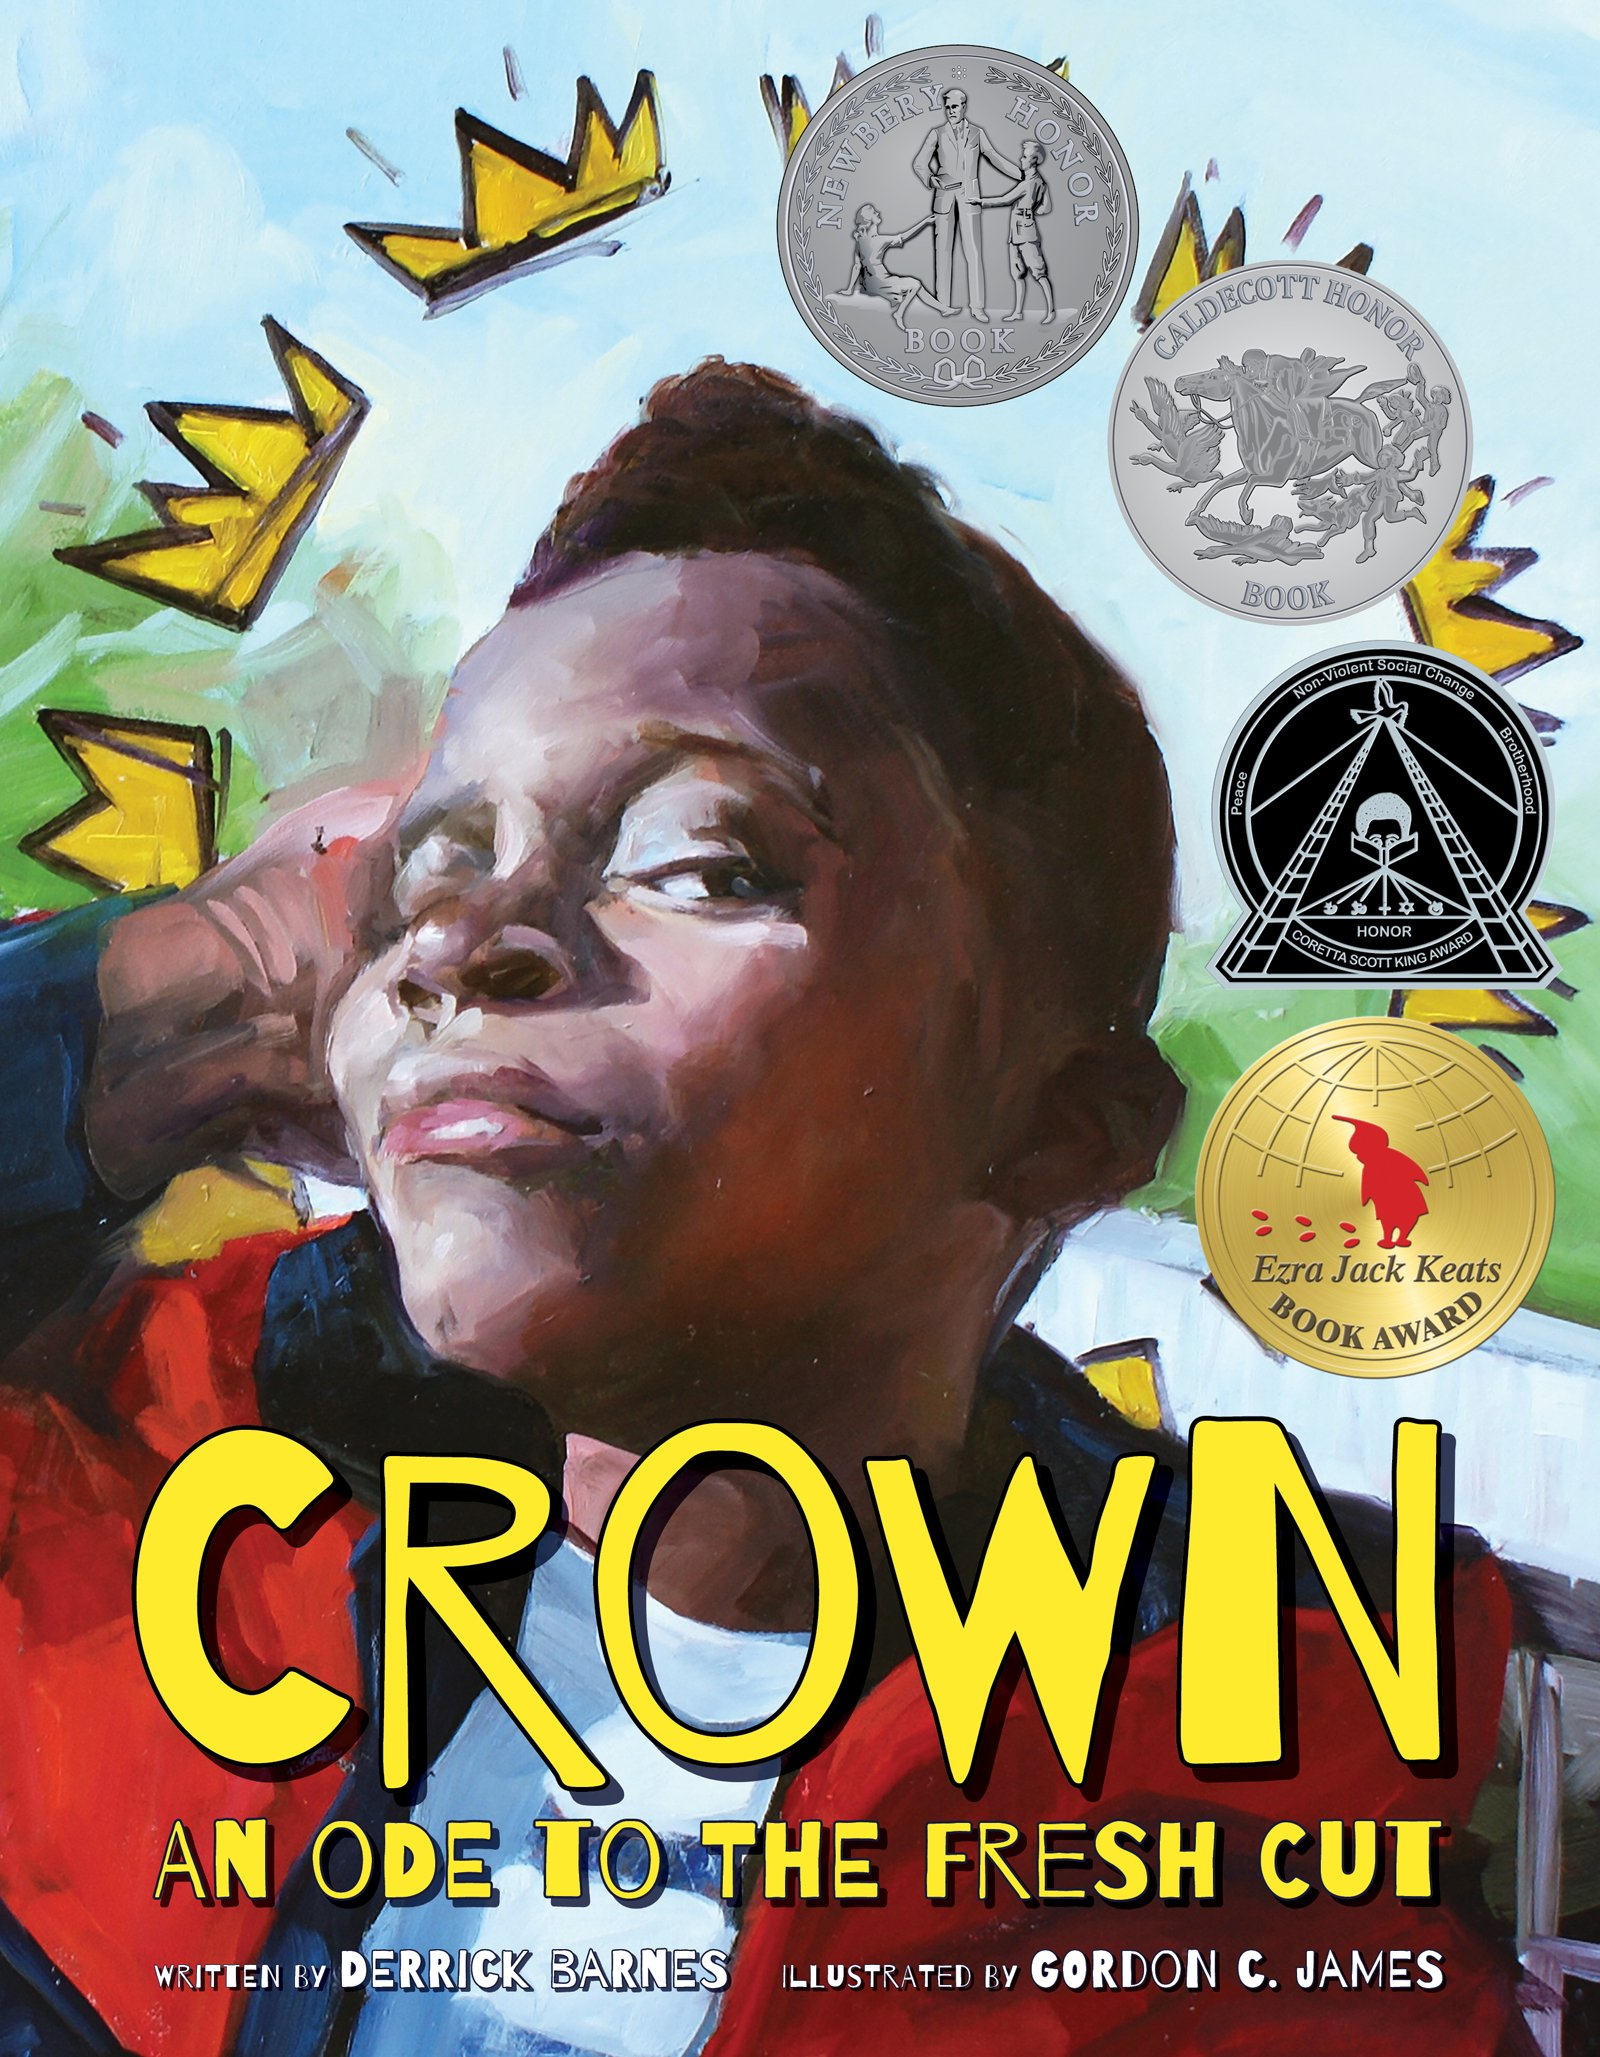 Image of African American child surrounded by crowns, book jacket for Crown.